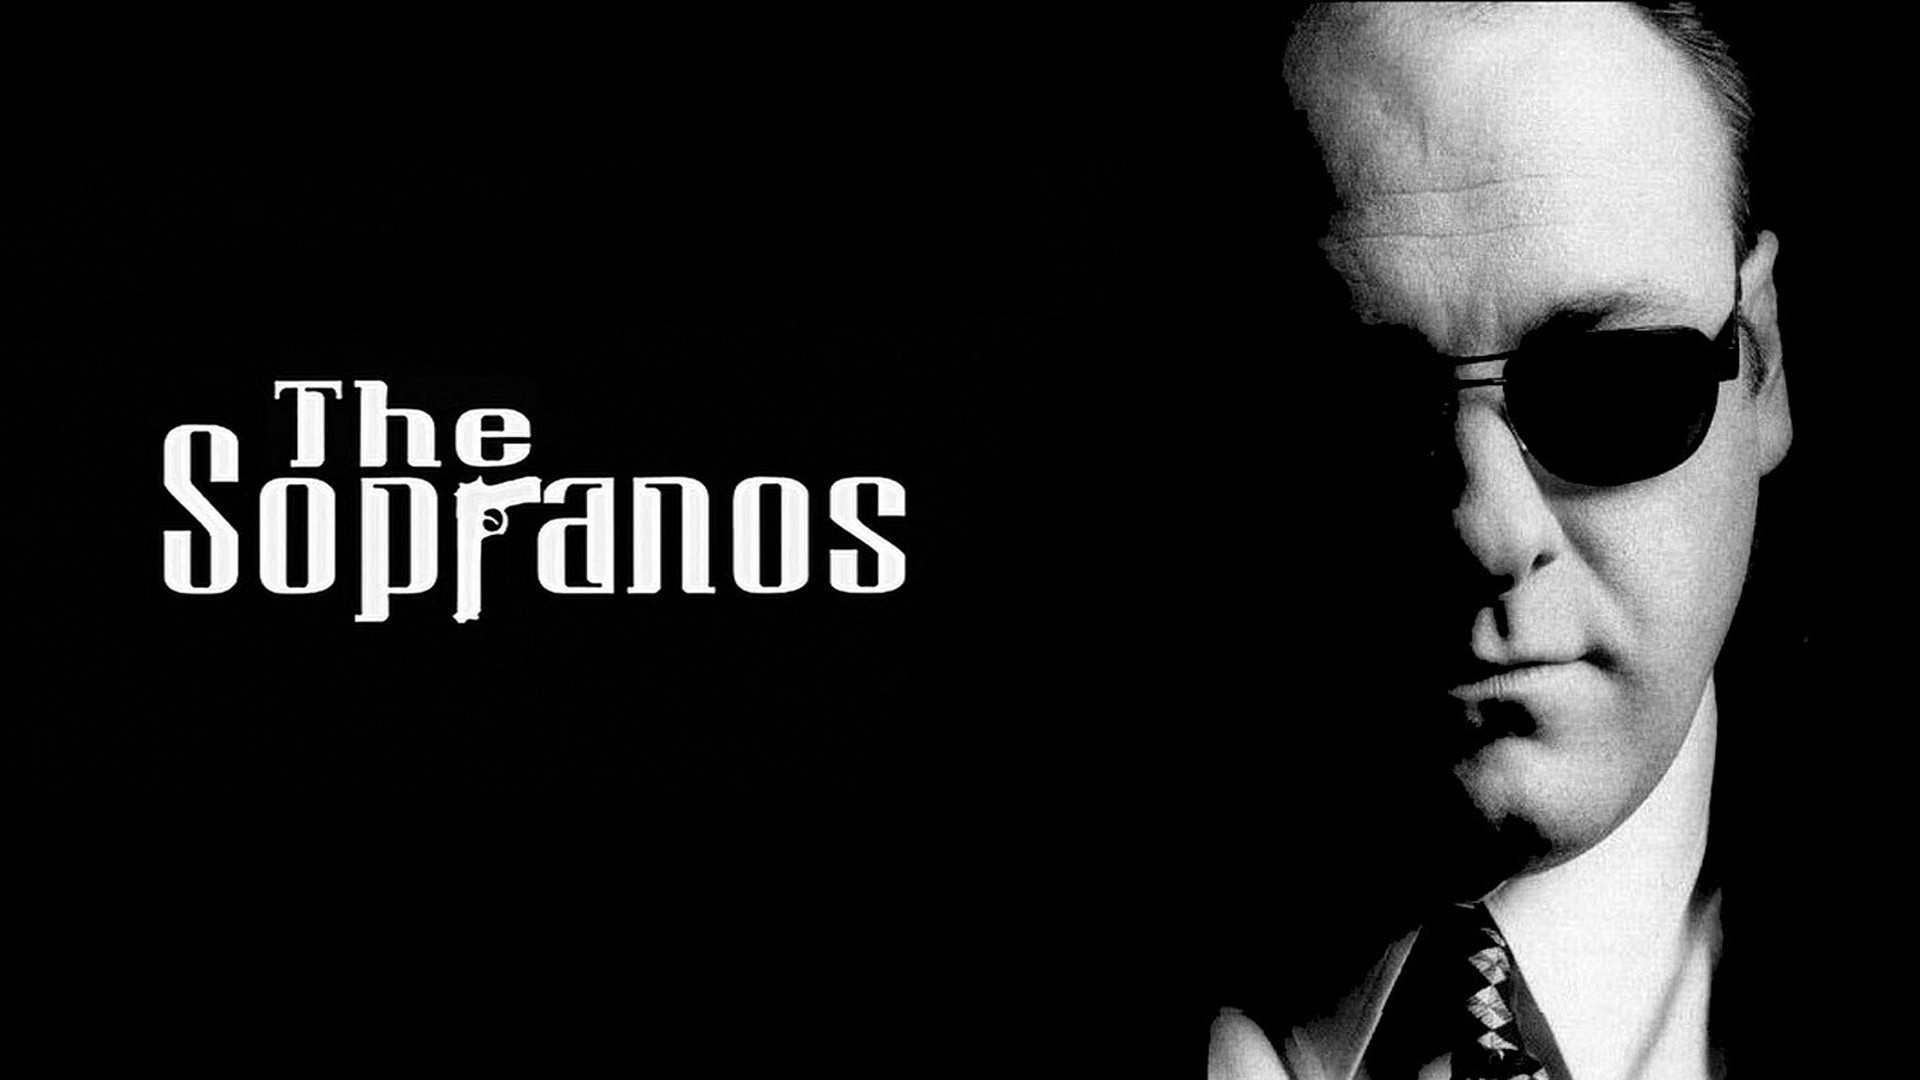 Res: 1920x1080, The Sopranos wallpaper 2